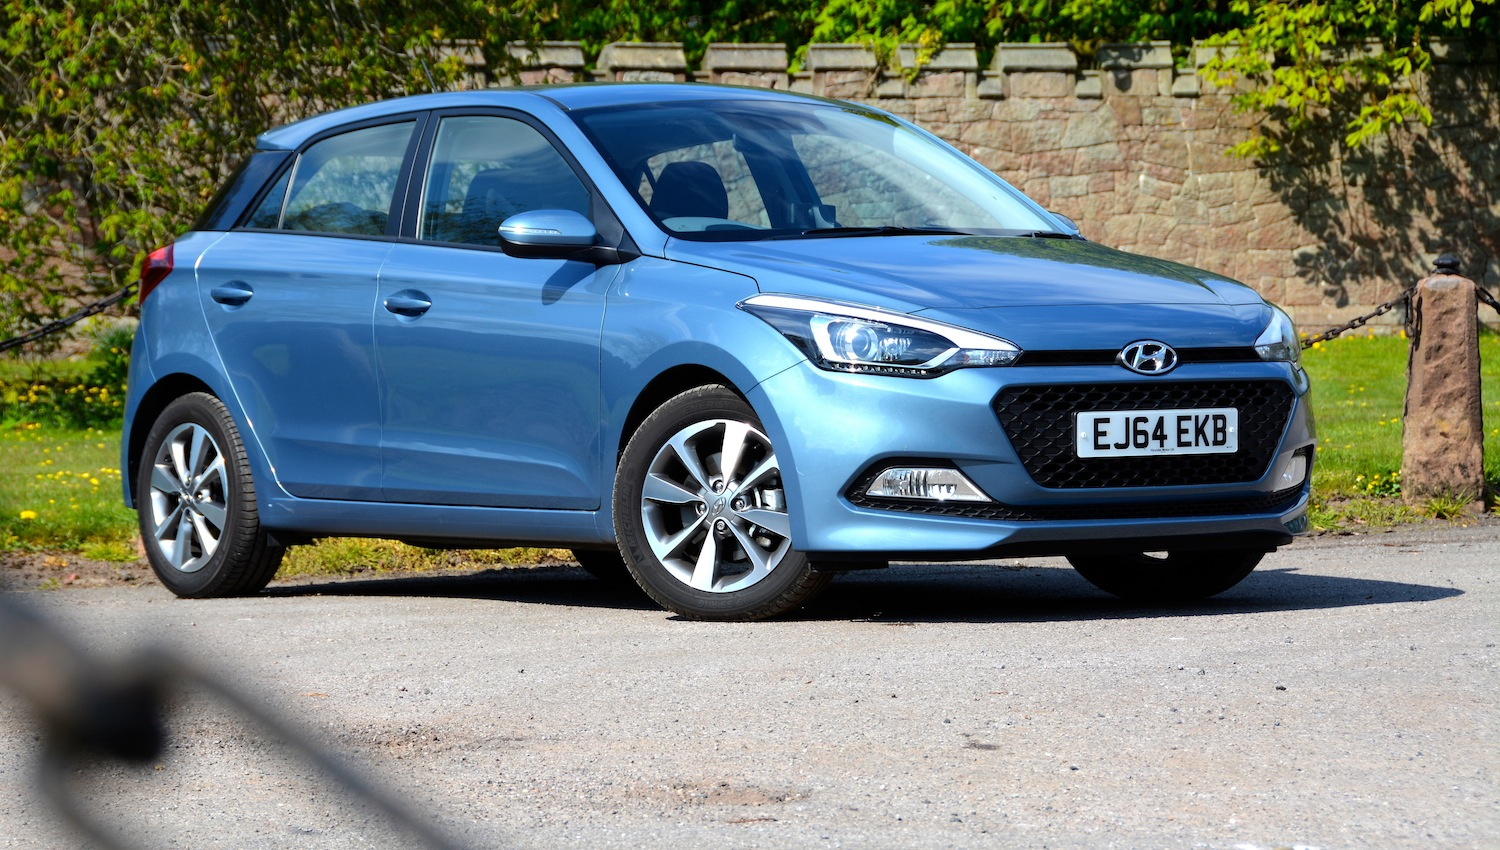 hyundai i20 se 1 1 crdi manual review. Black Bedroom Furniture Sets. Home Design Ideas